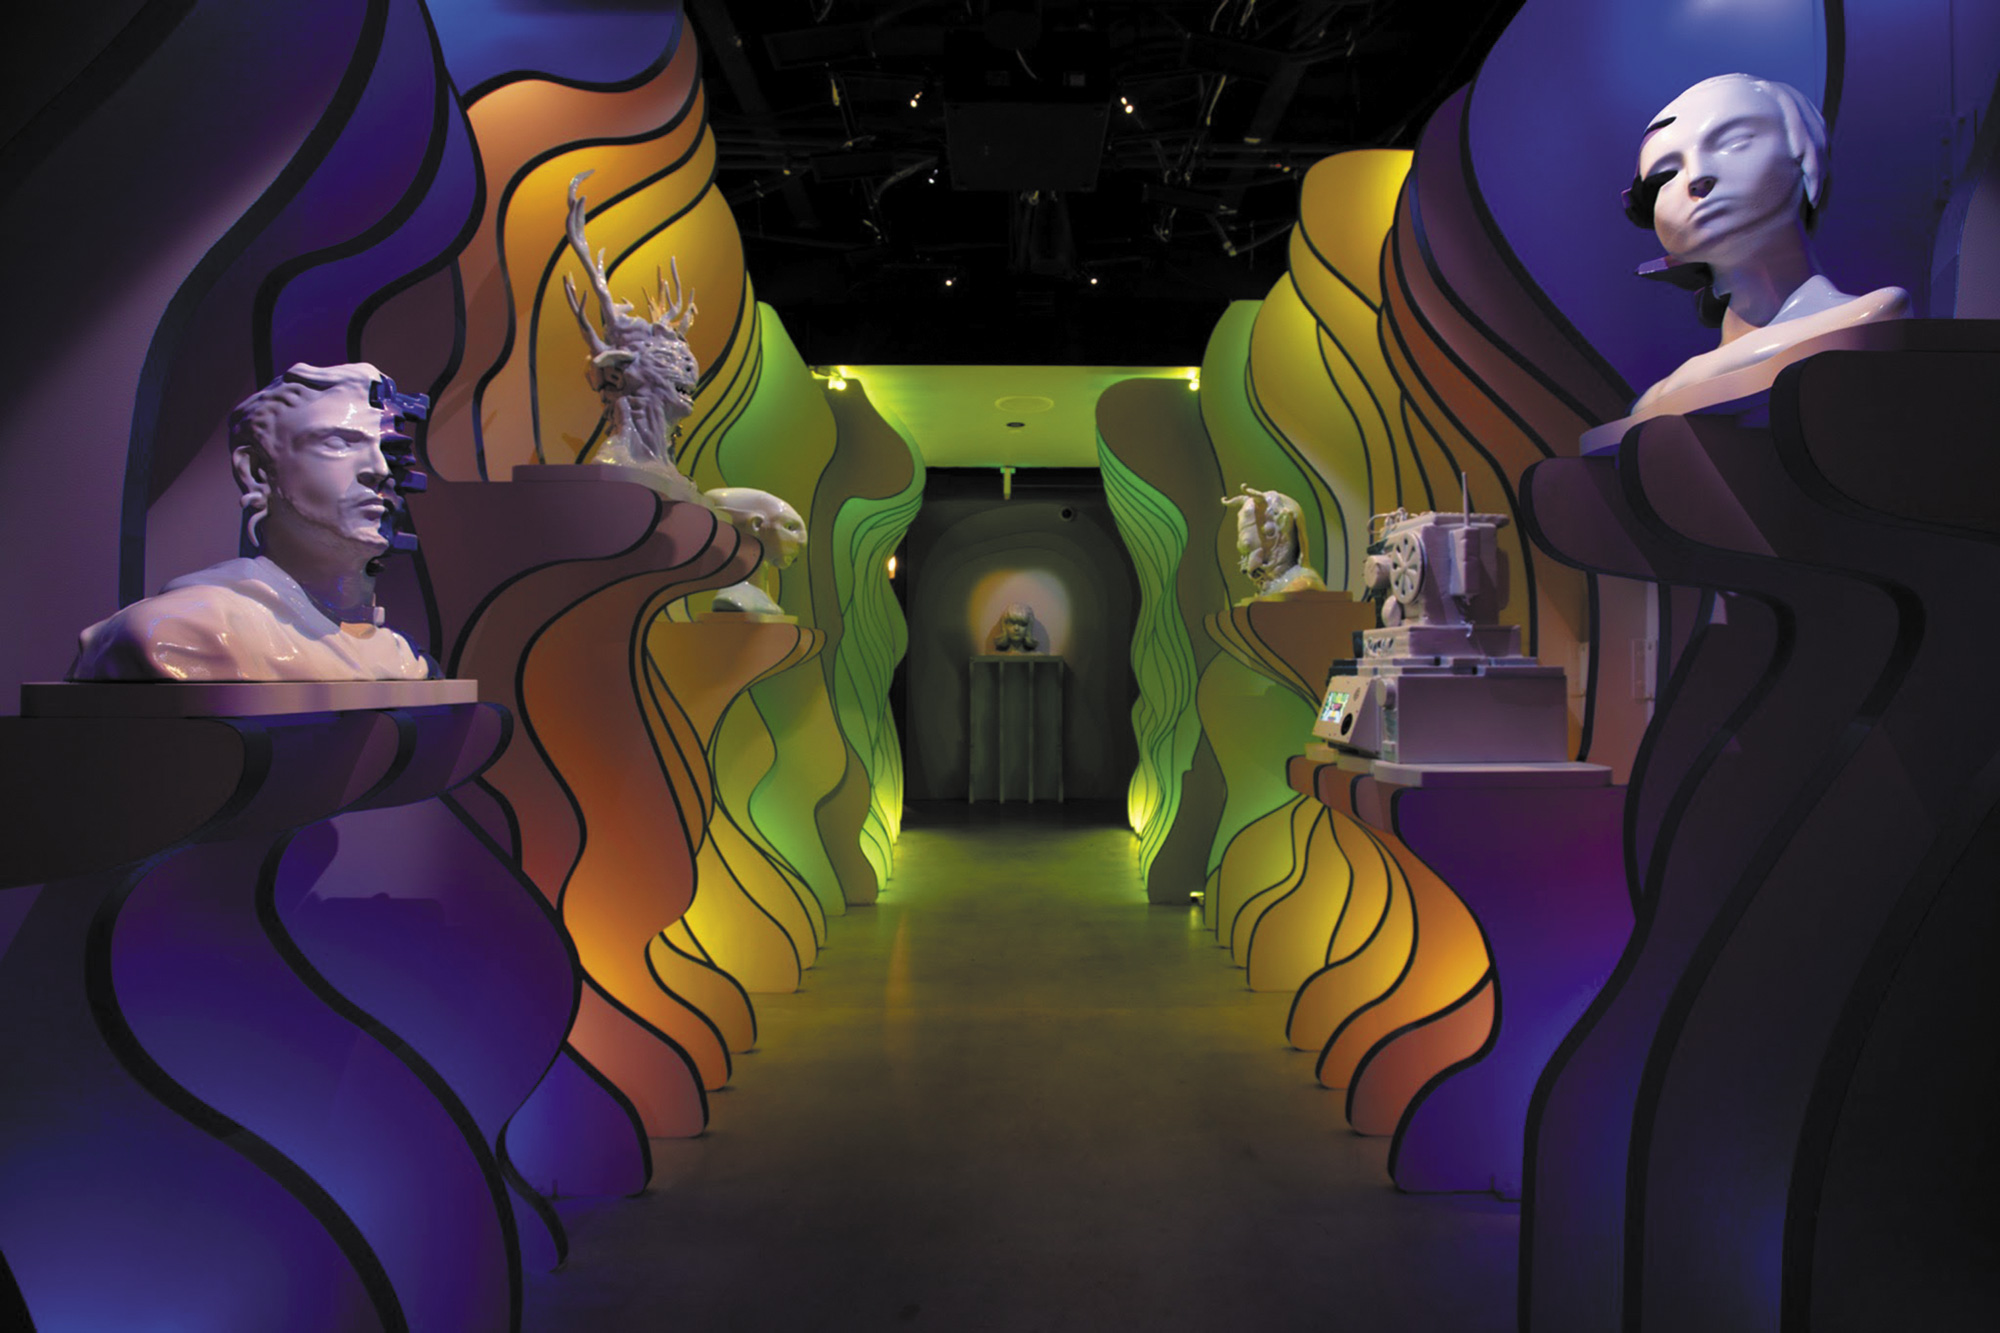 Hall-of-Busts-_-Lead-Artist--Sandra-Wang_Meow Wolf: A Look into the 4 Converged Worlds by Jordan Rumsey